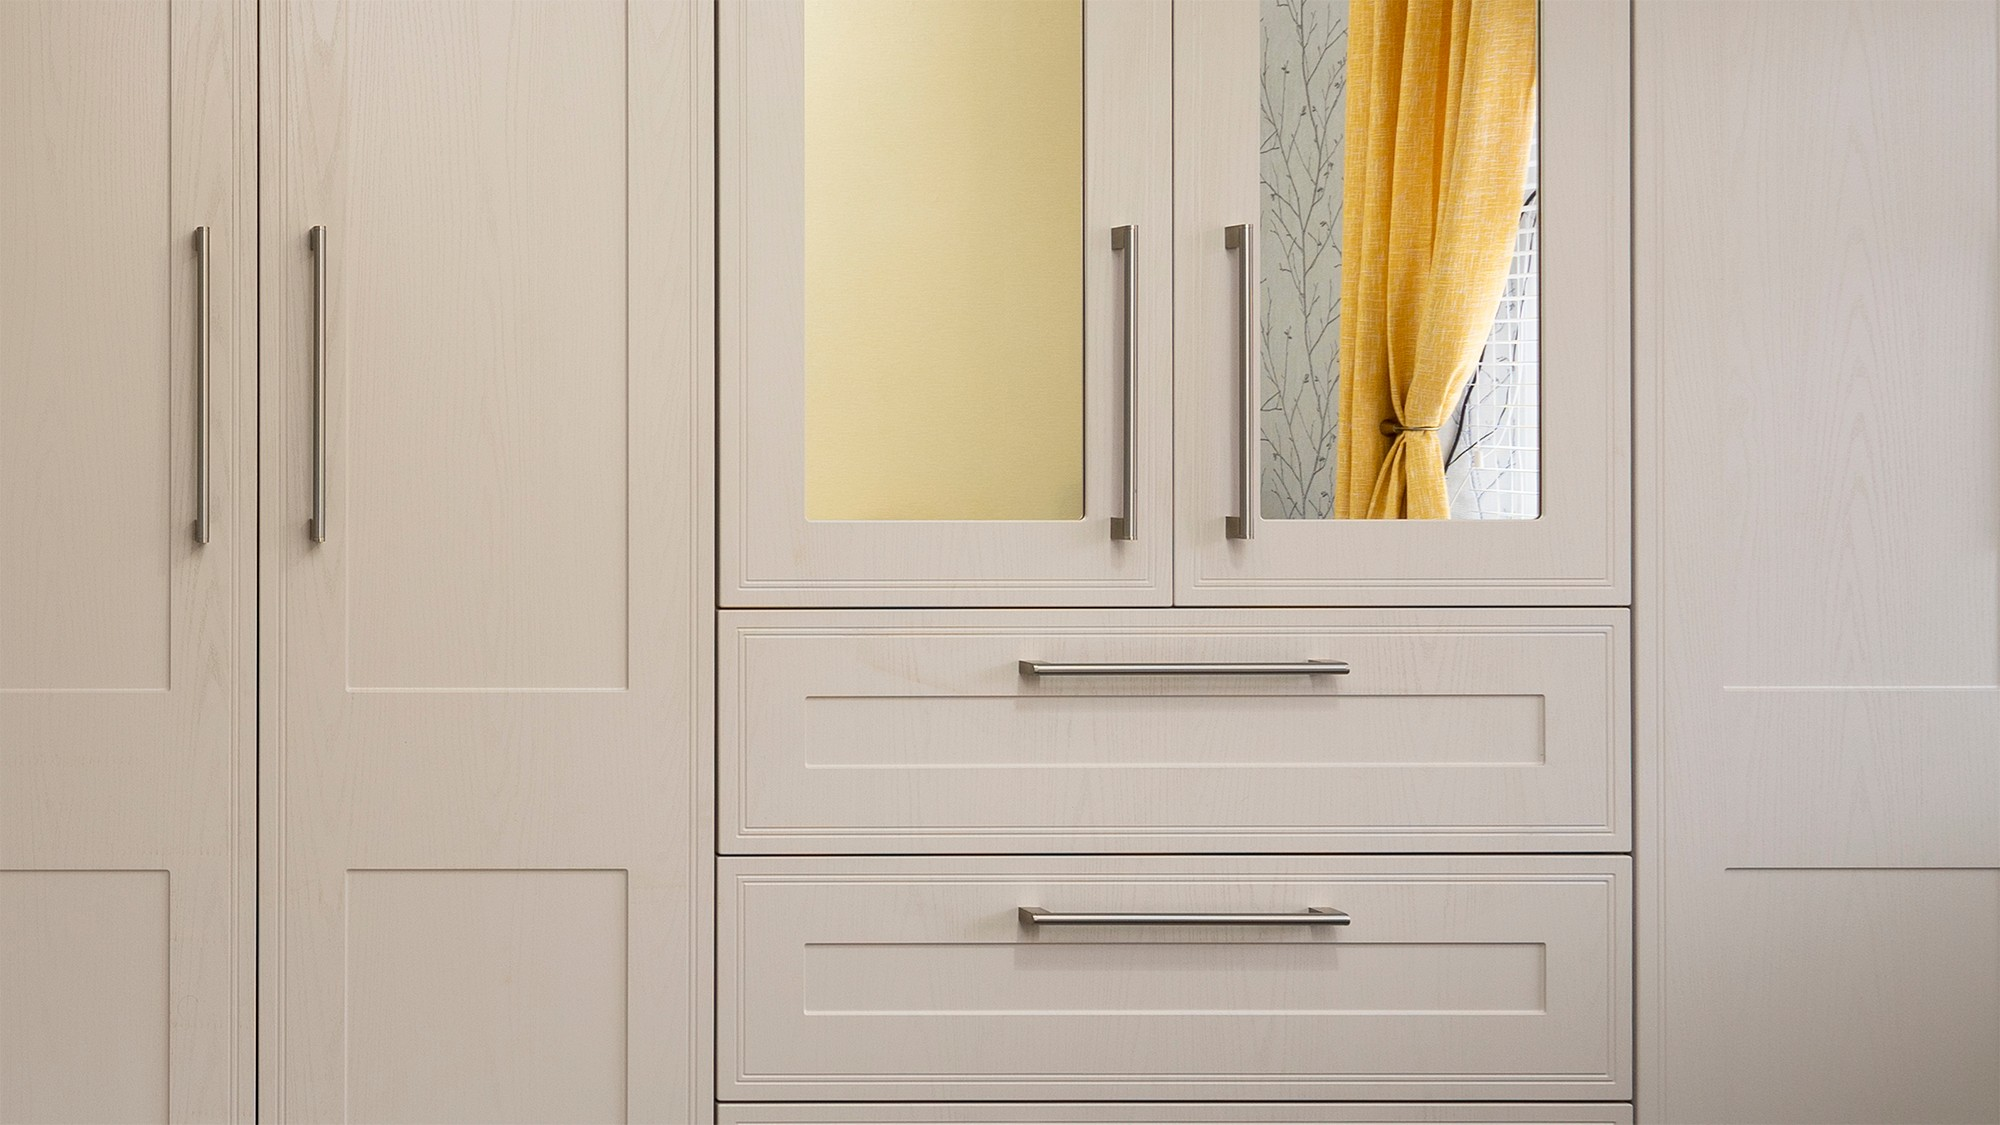 Straight on view showing the wood-grain effect and stainless steel handles of our tulleymore door collection.